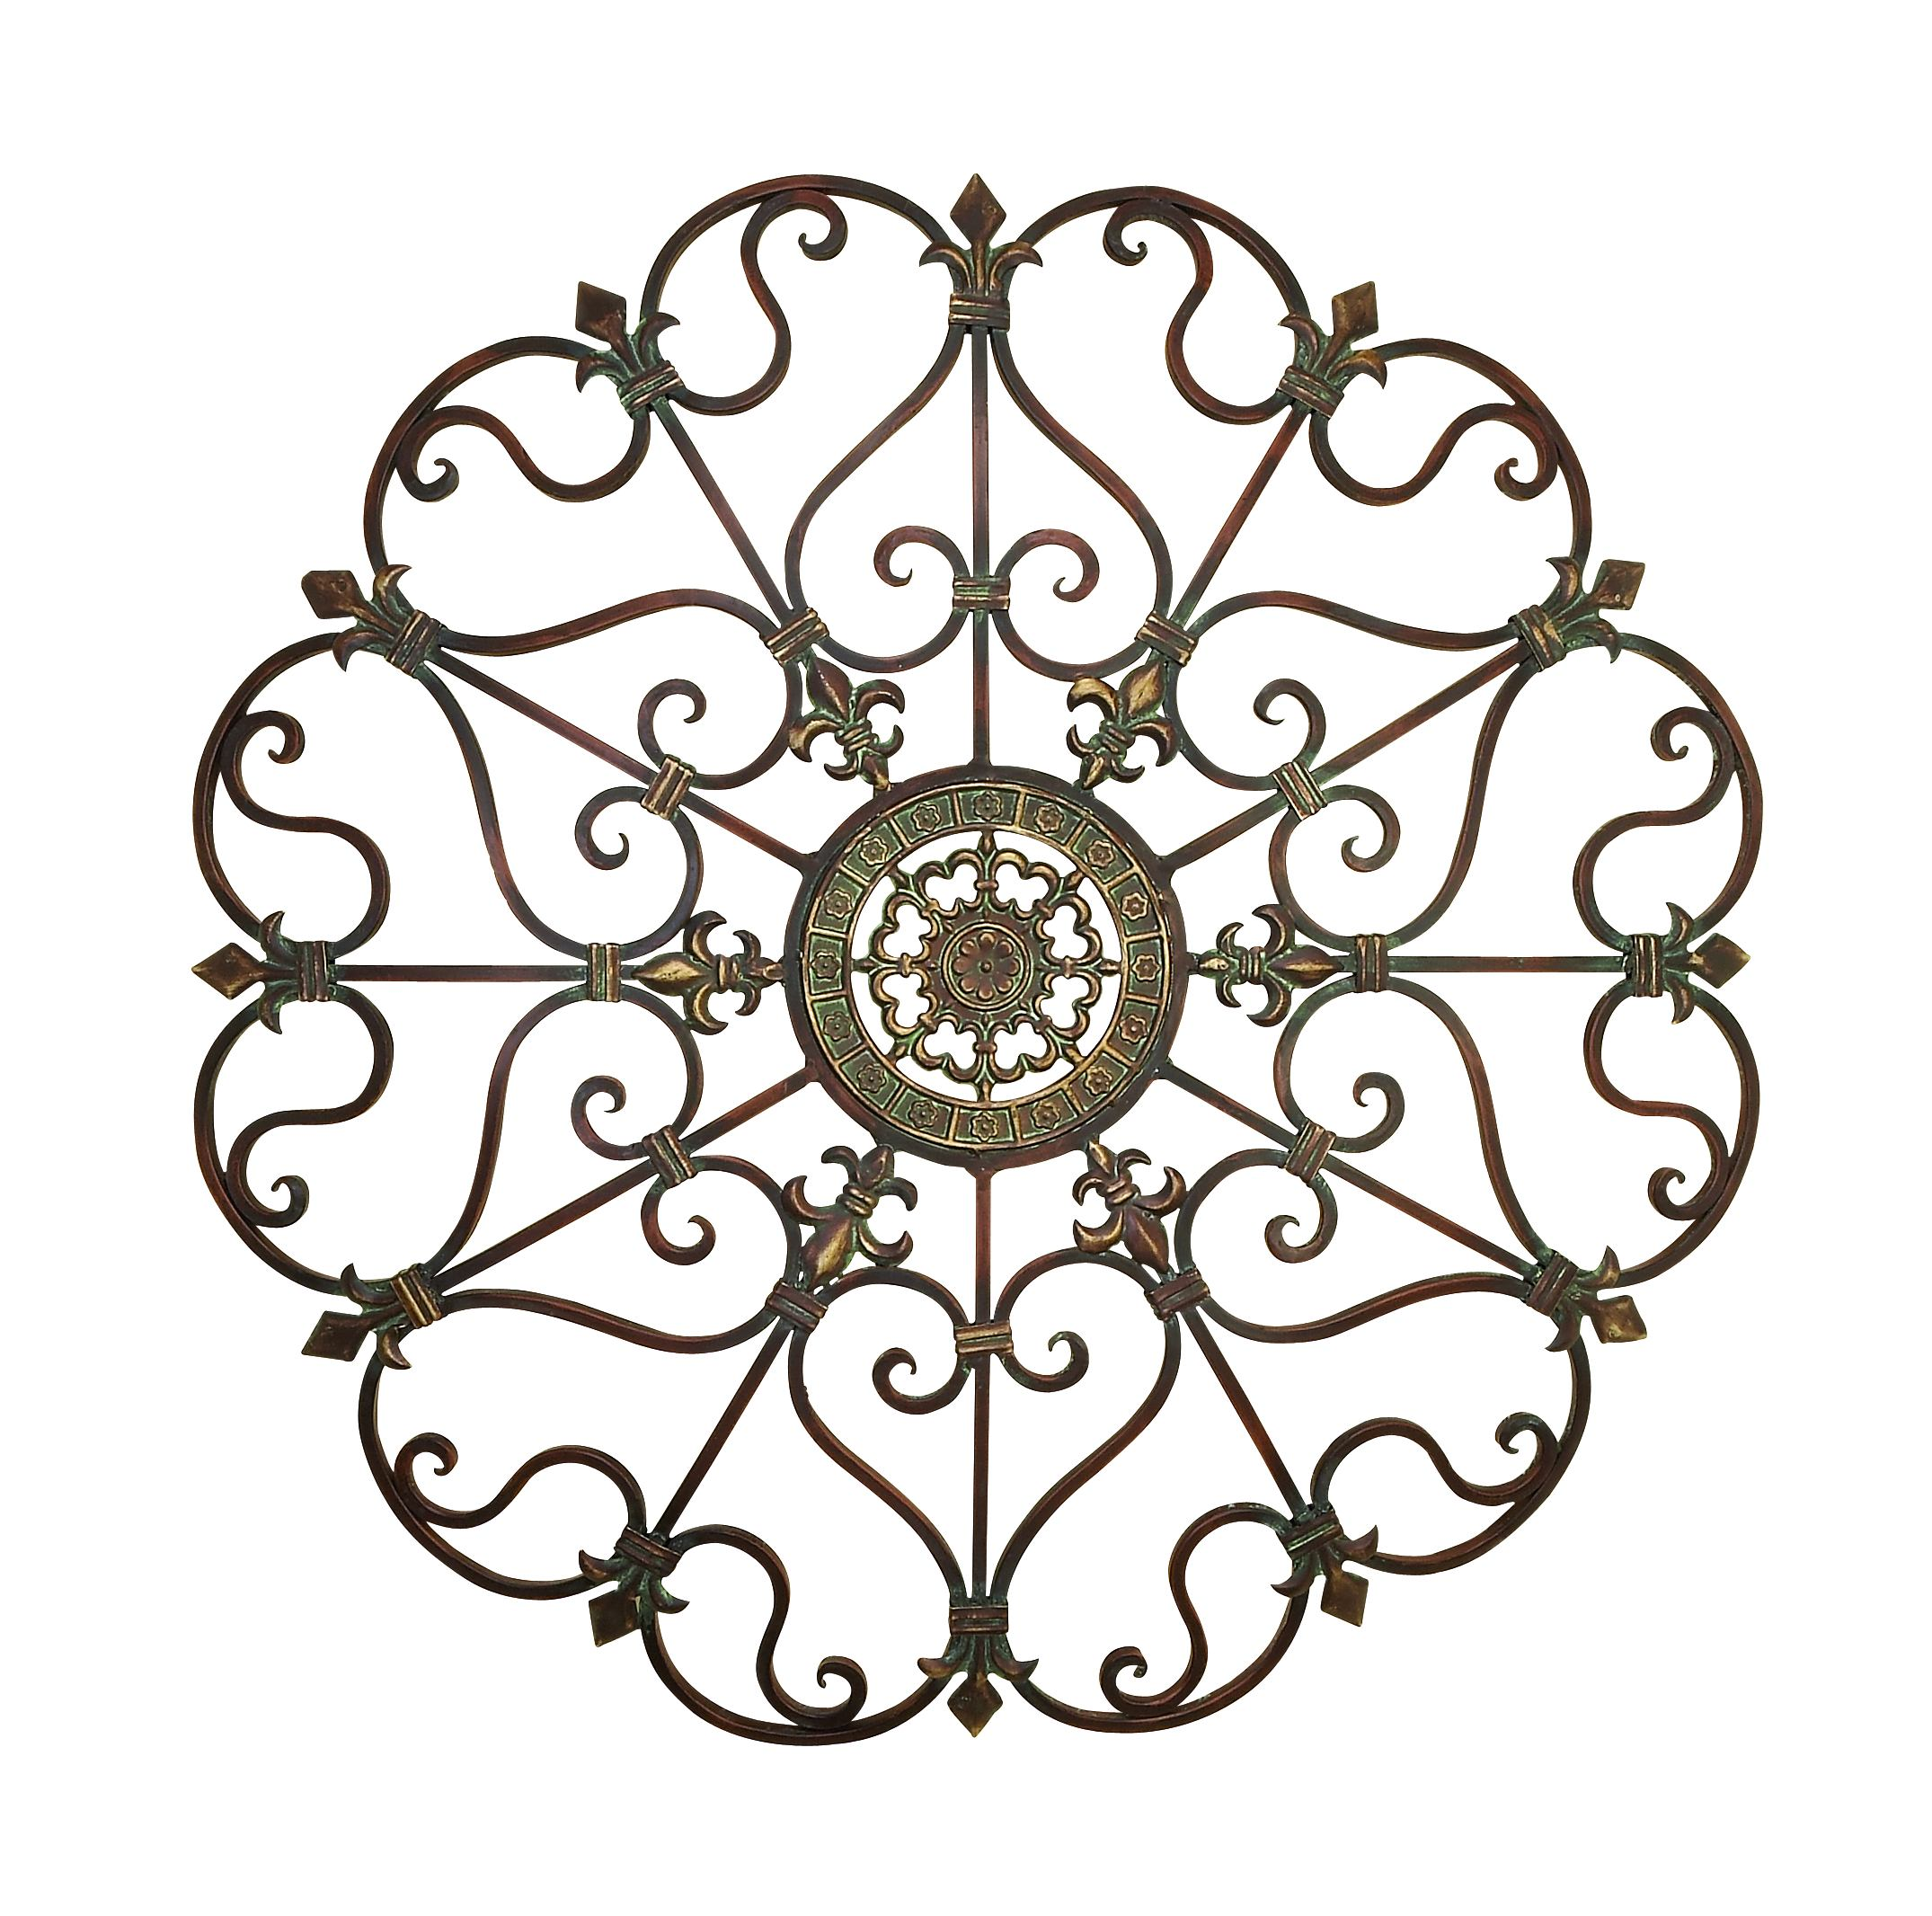 Decmode Traditional 29 Inch Ornate Bronze Metal Wall Decor